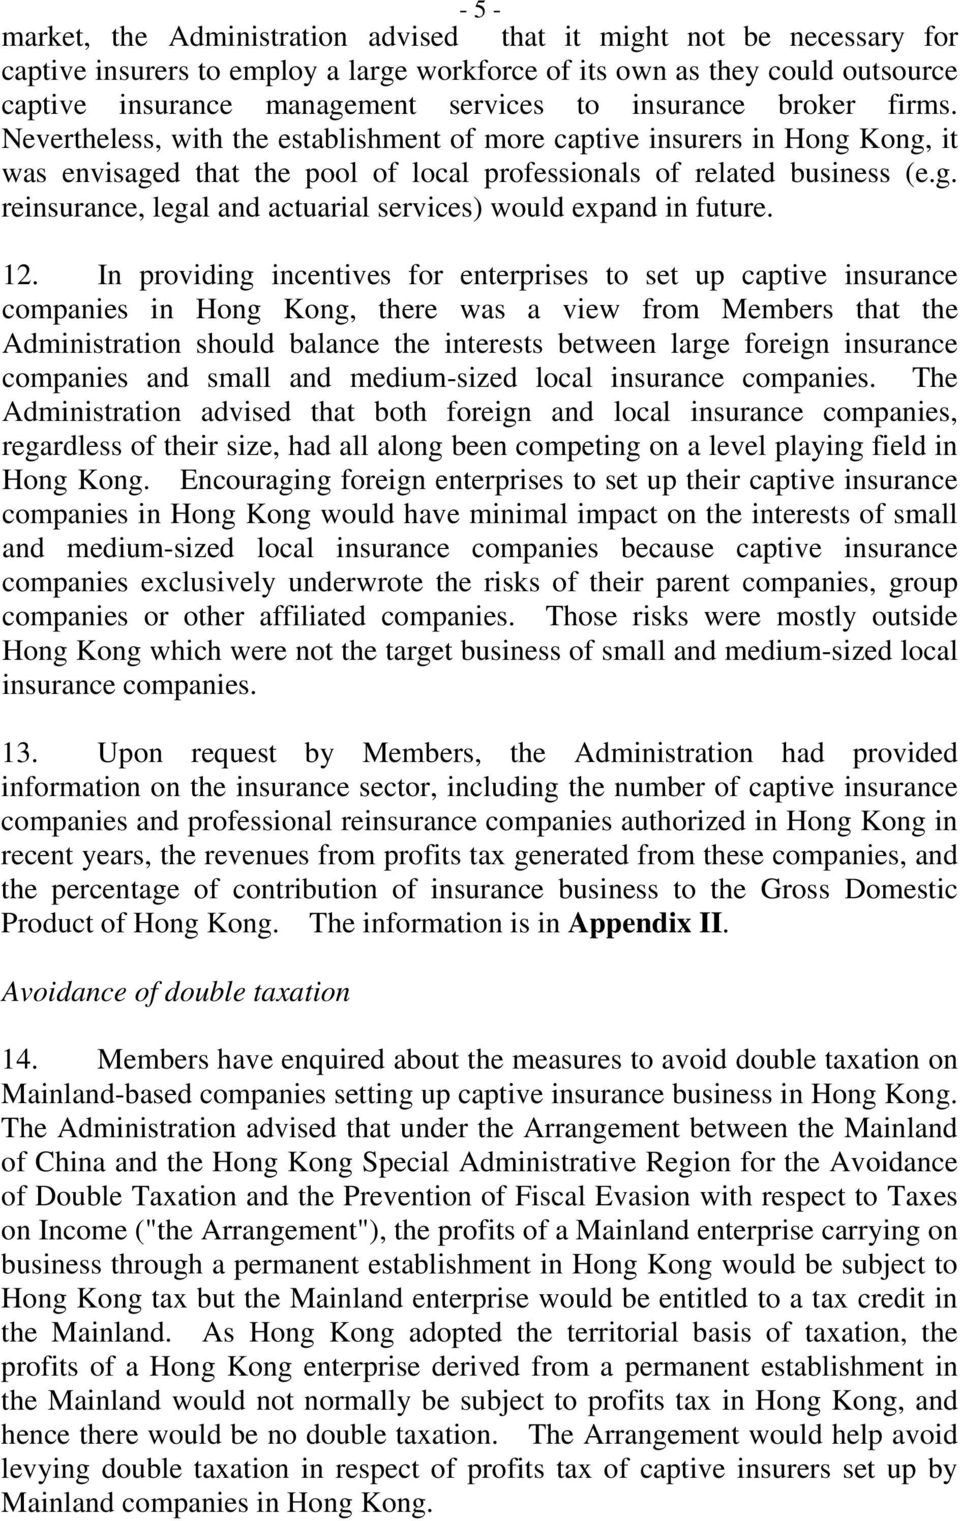 12. In providing incentives for enterprises to set up captive insurance companies in Hong Kong, there was a view from Members that the Administration should balance the interests between large